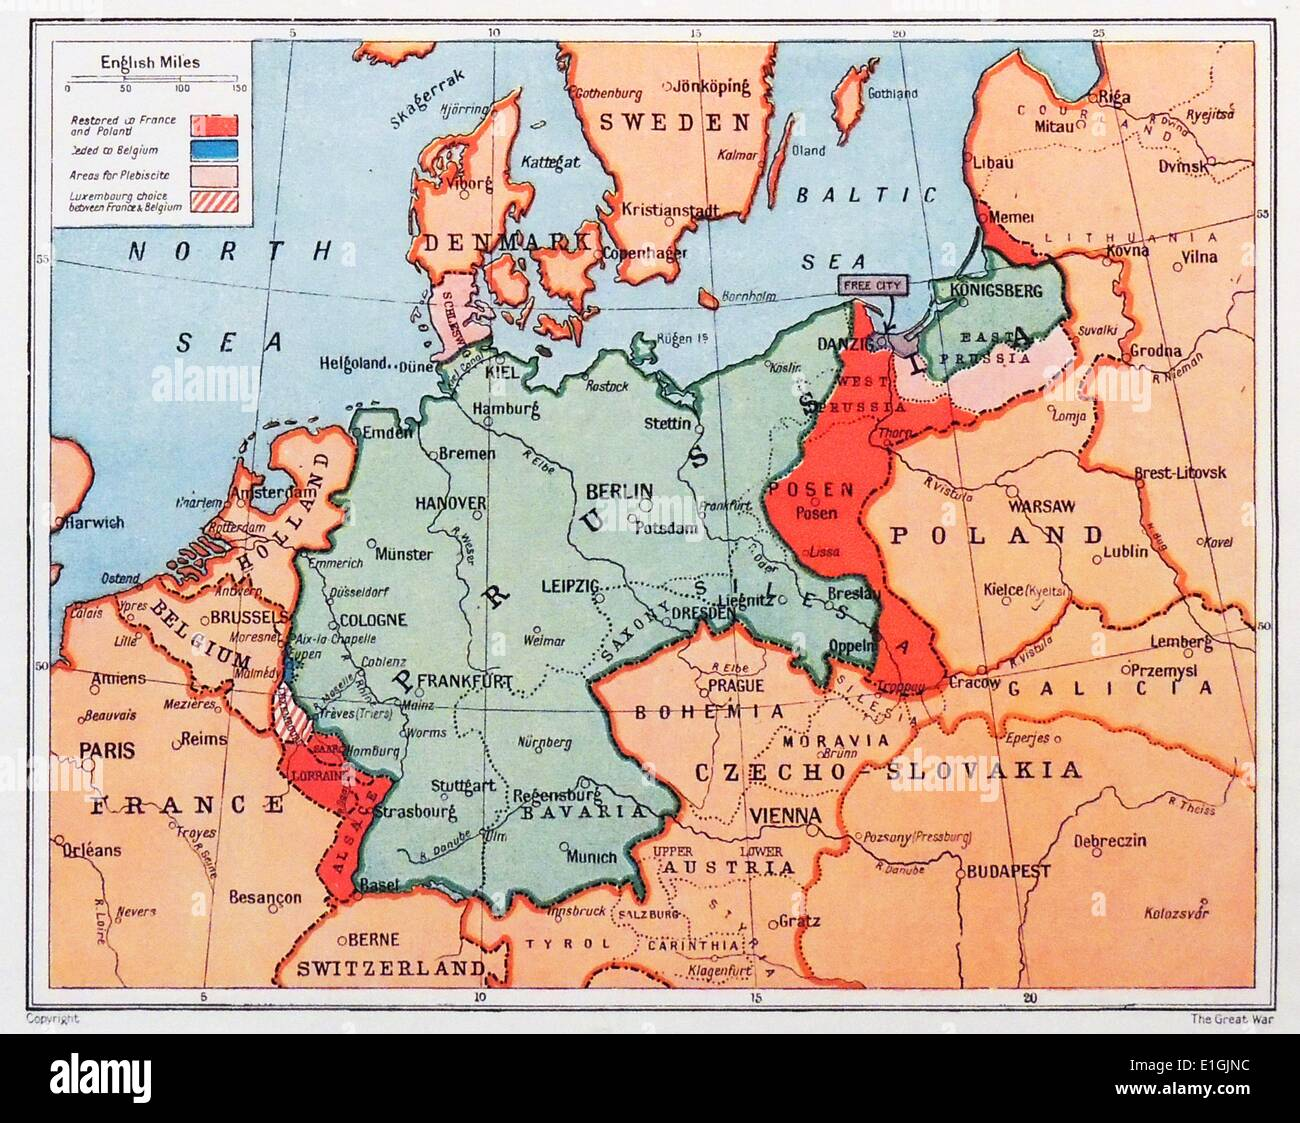 Map Of Germany 1870.Map Of Prussia In Germany Circa 1870 Stock Photo 69822072 Alamy